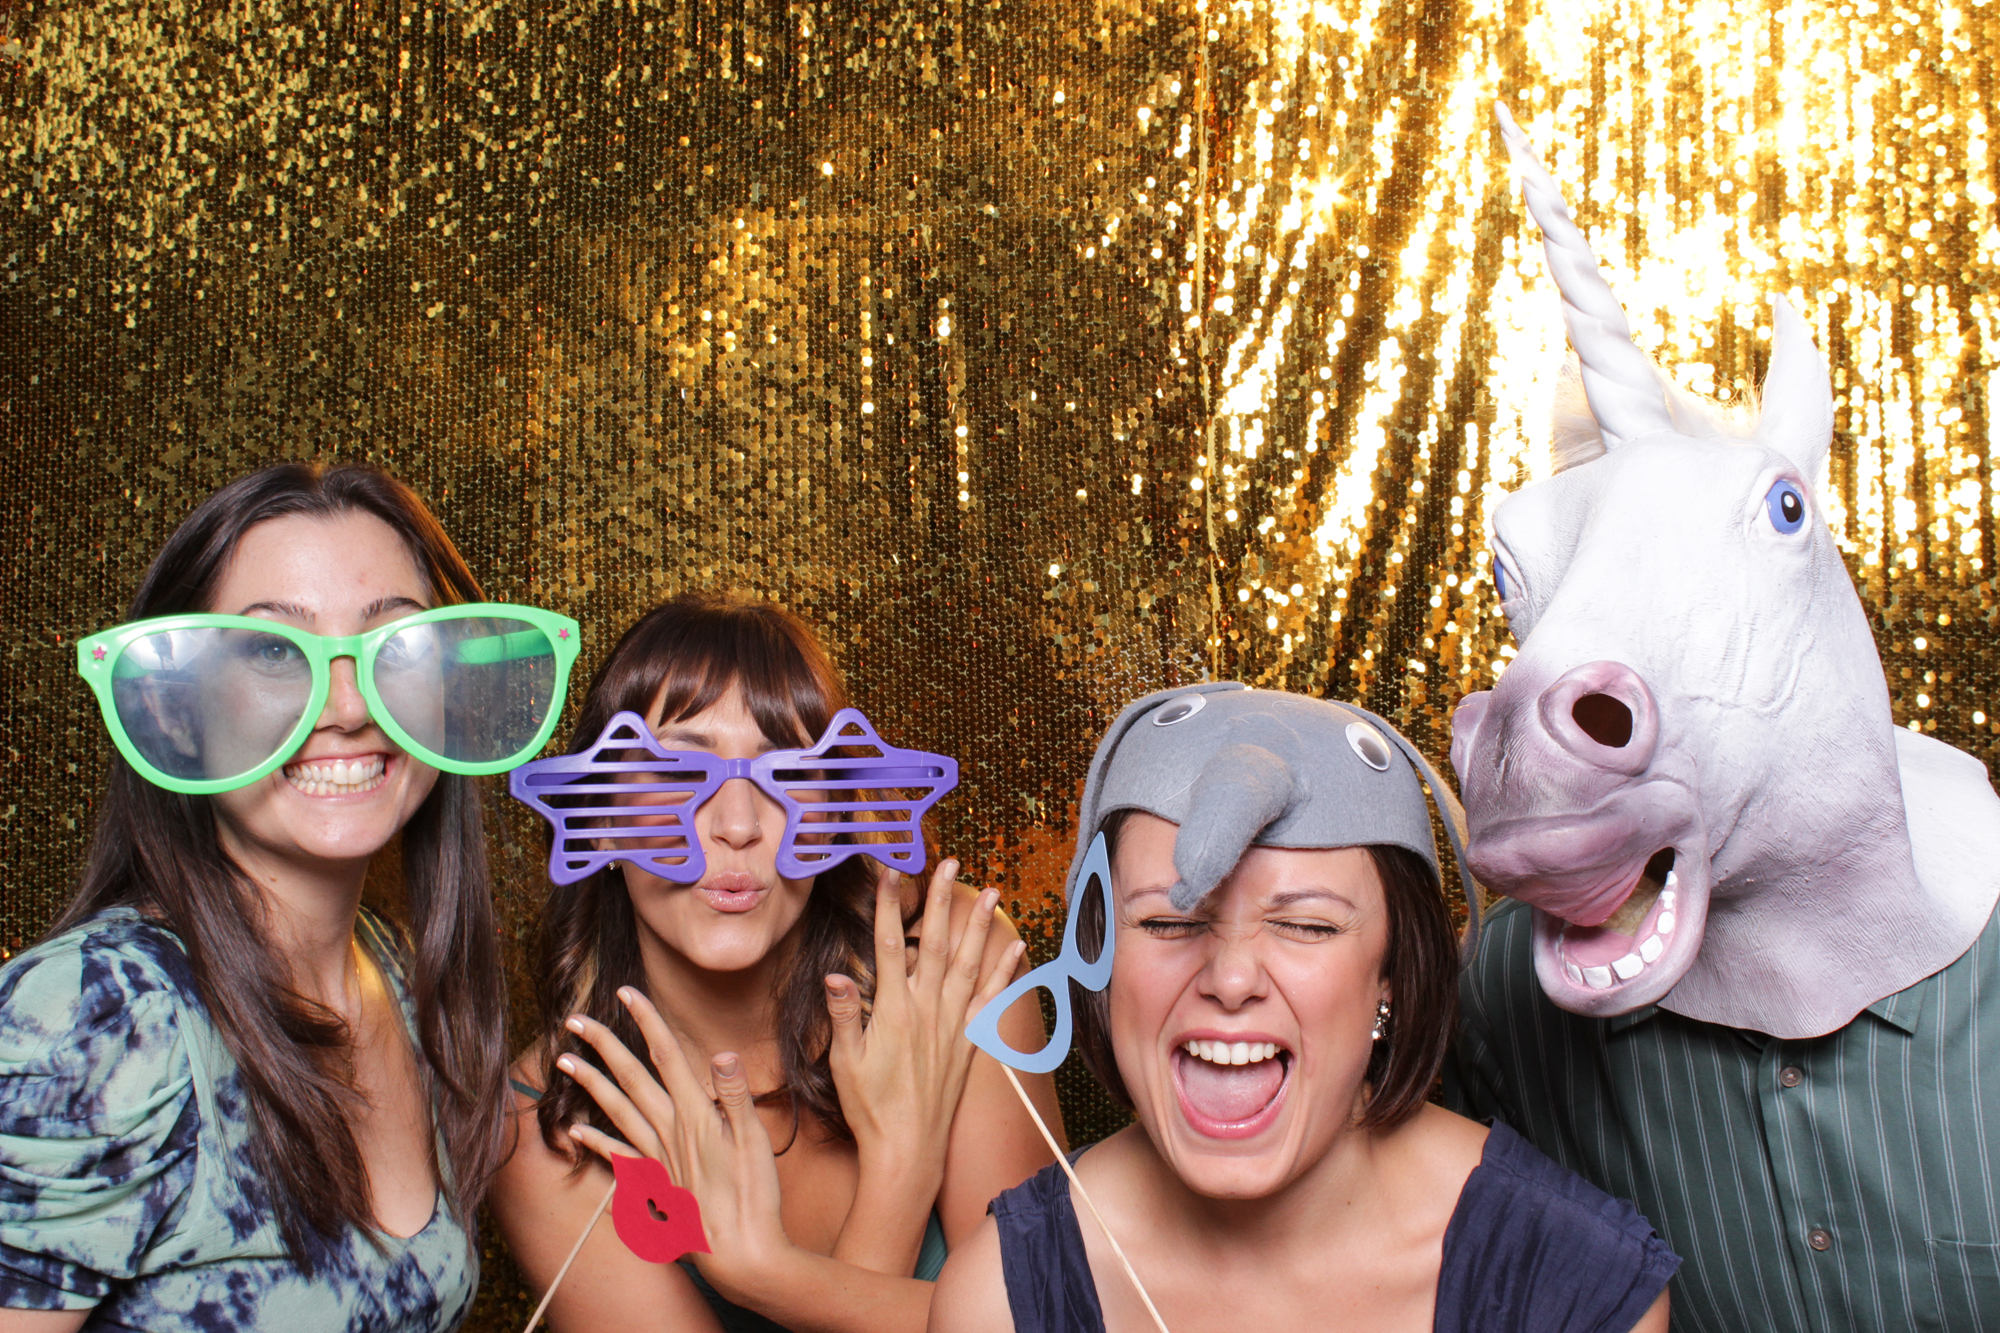 chico-photo-booth-rental-sequins-open-air-1.jpg